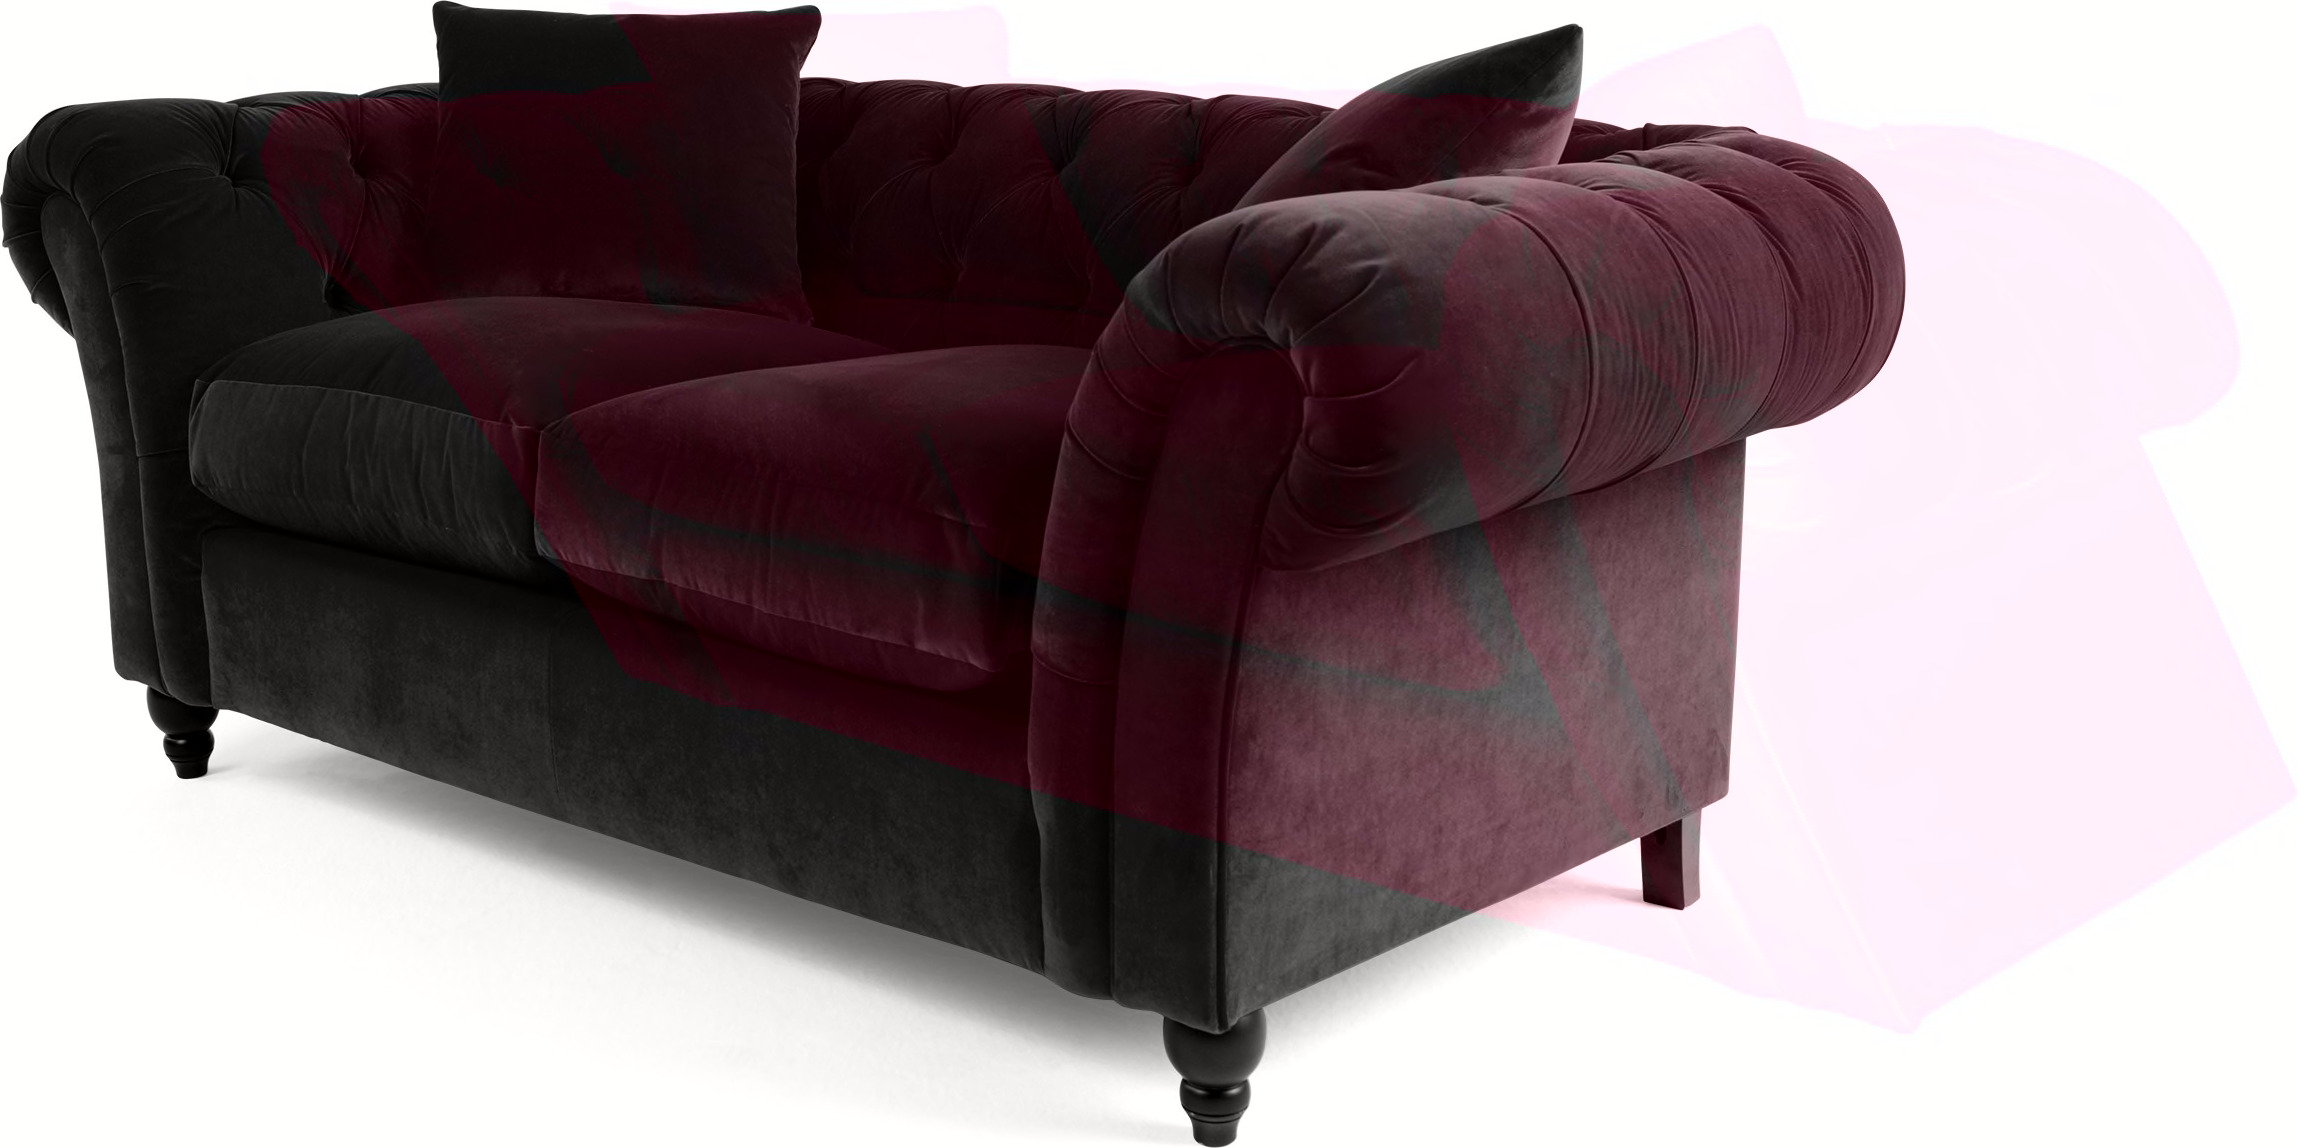 velvet chesterfield sofa shop for cheap sofas and save. Black Bedroom Furniture Sets. Home Design Ideas